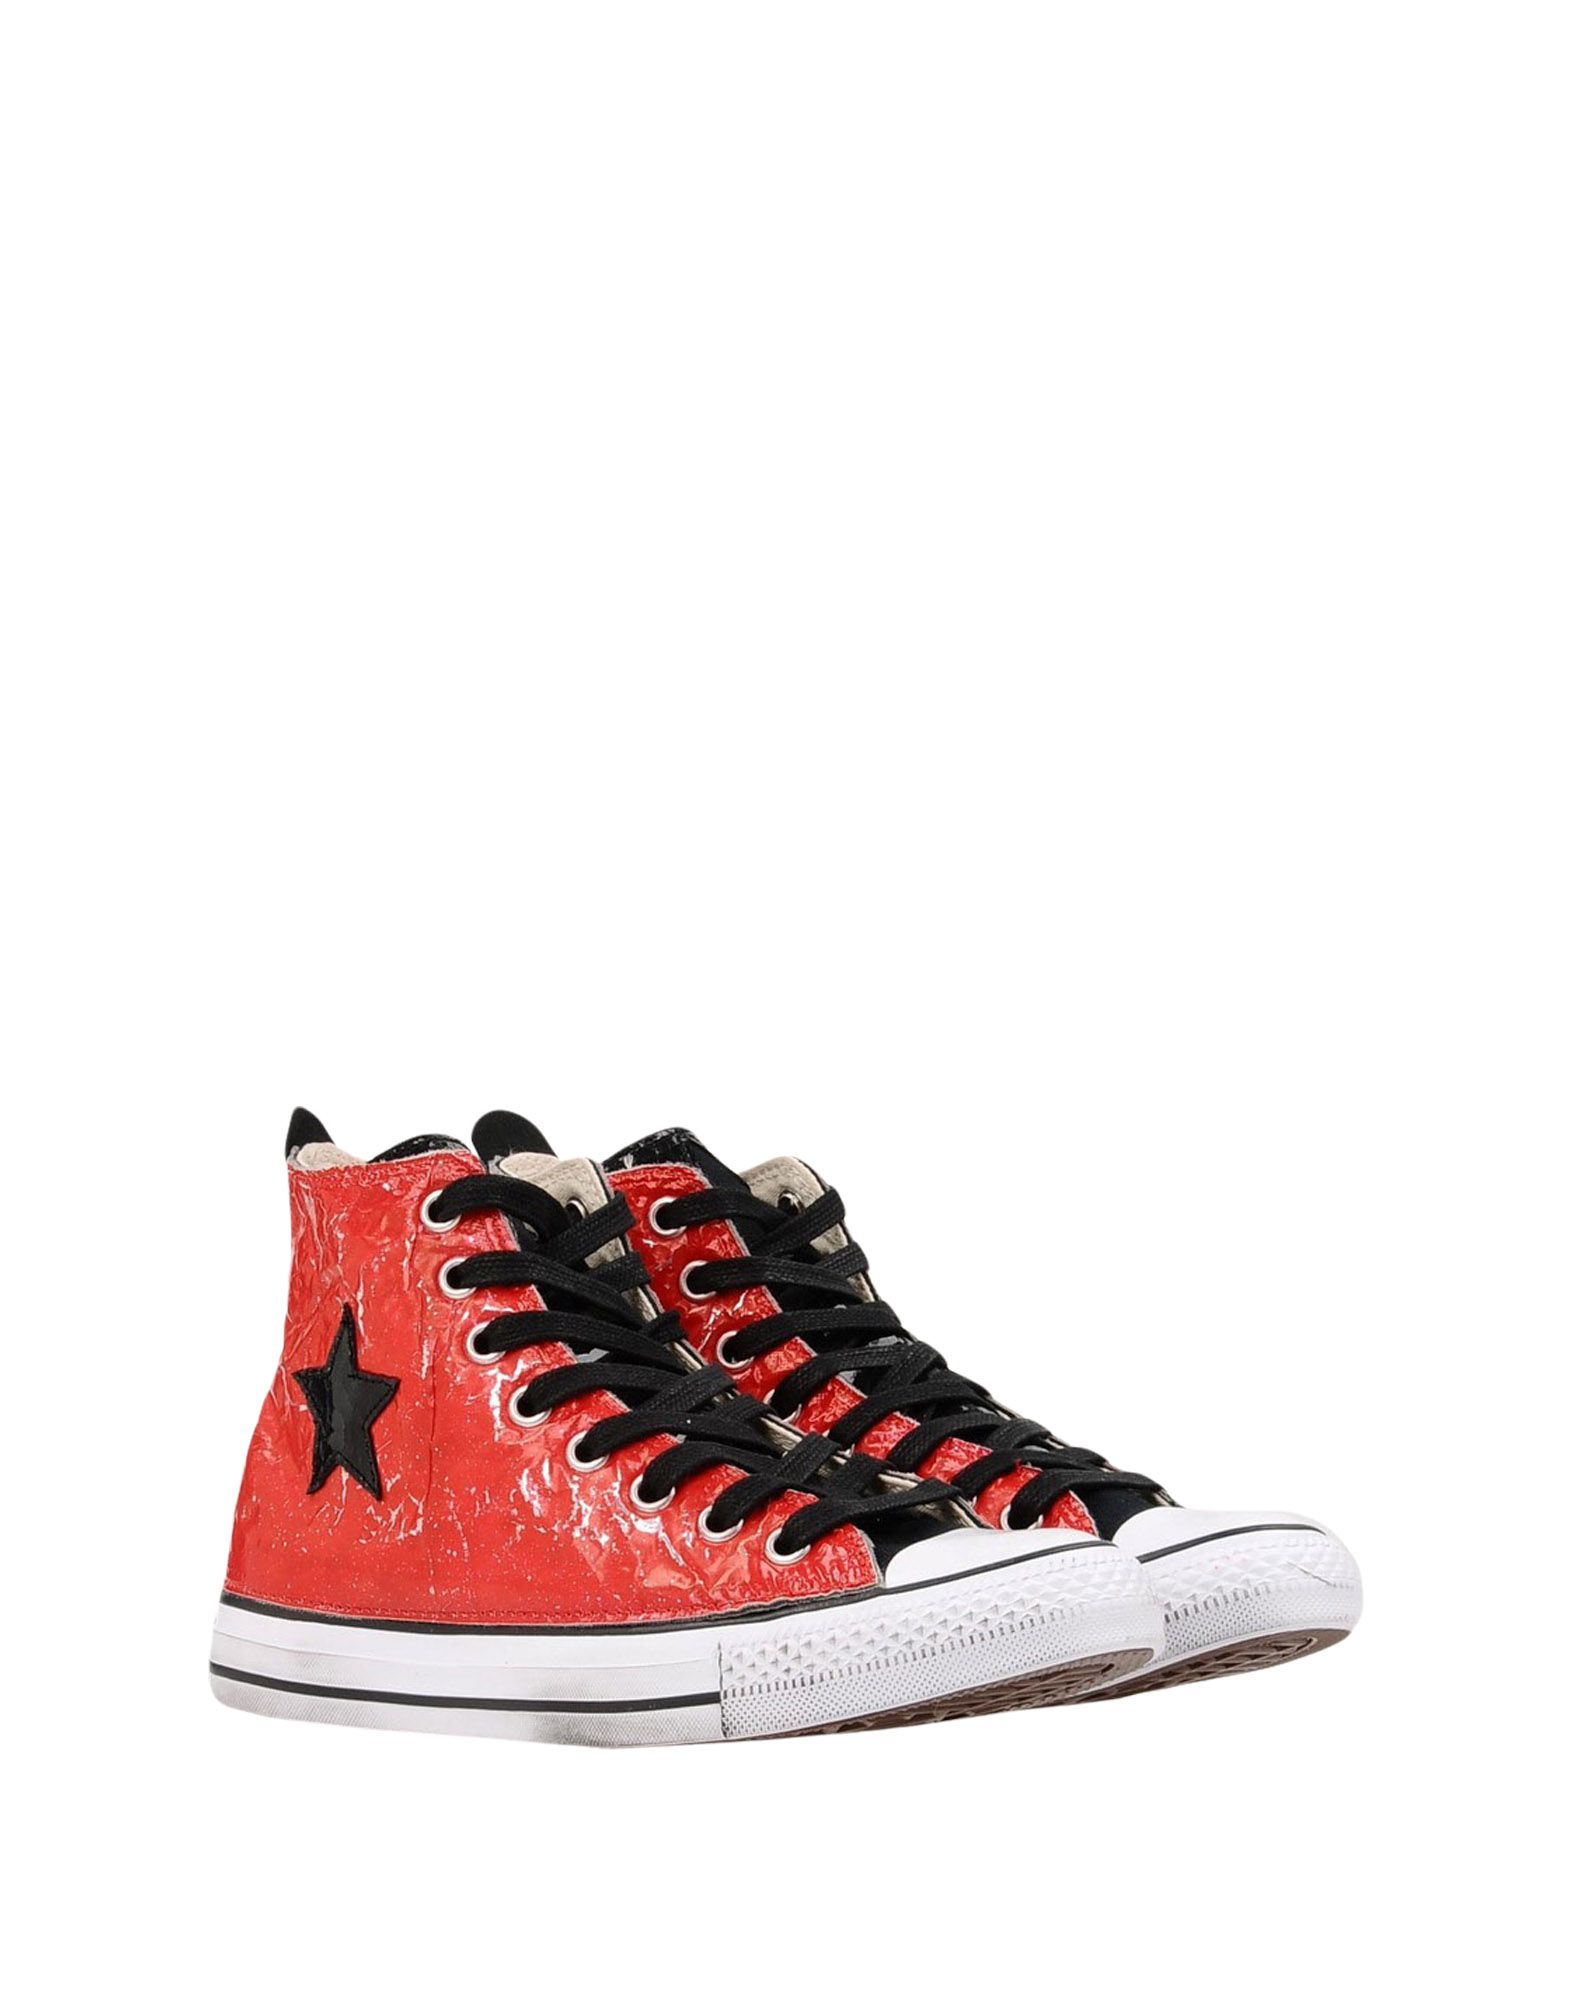 Sneakers Converse Canvas/Leather Limited Edition Ctas Hi Canvas/Leather Converse Ltd - Donna - 11394477JE fd7afa